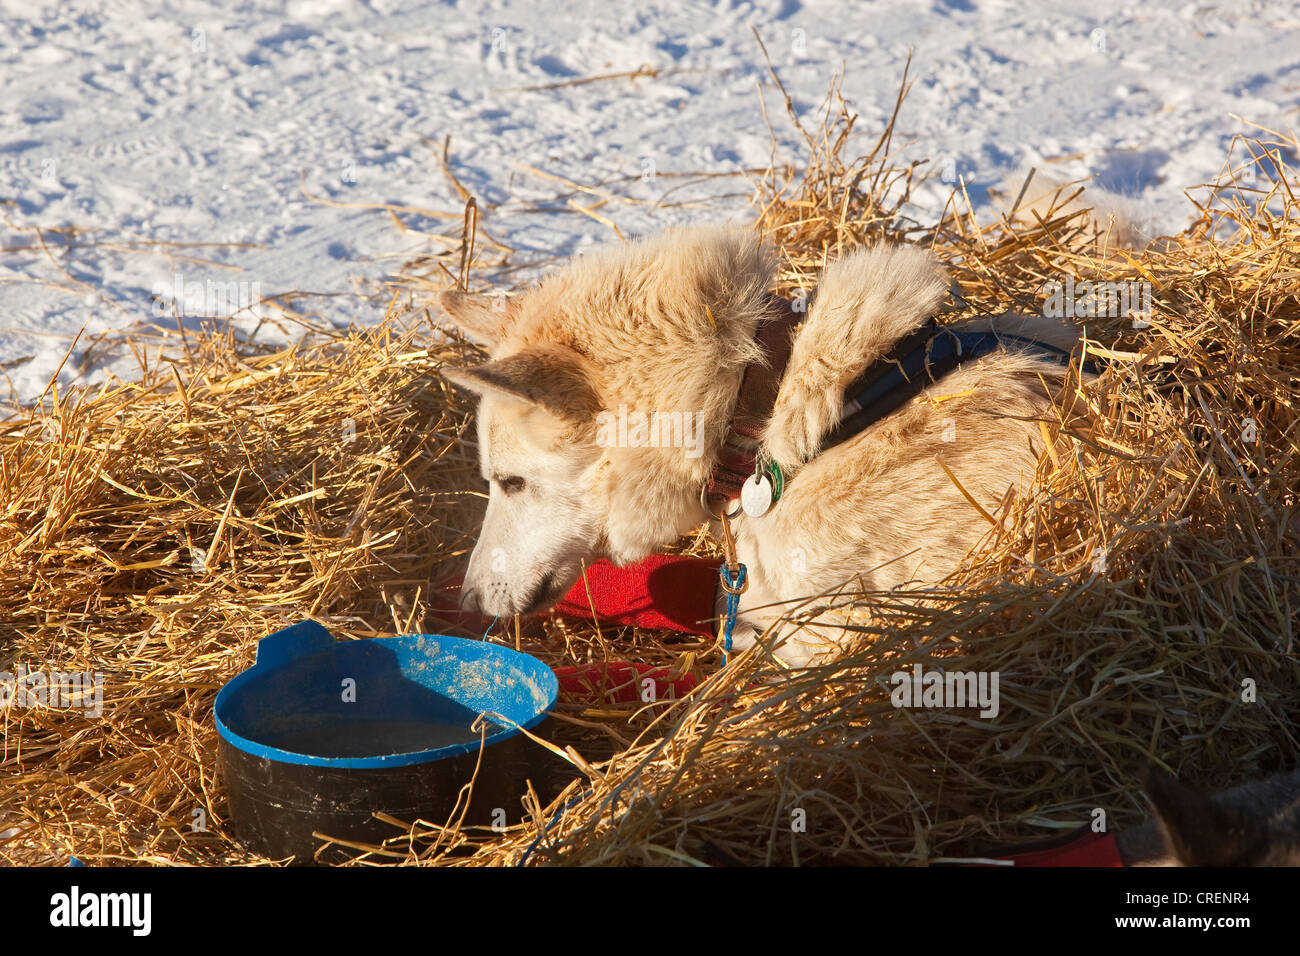 Sled dog looking at dog dish, wrist bandages, Alaskan Husky, straw, Pelly Crossing checkpoint, Yukon Quest 1, 000 - Stock Image